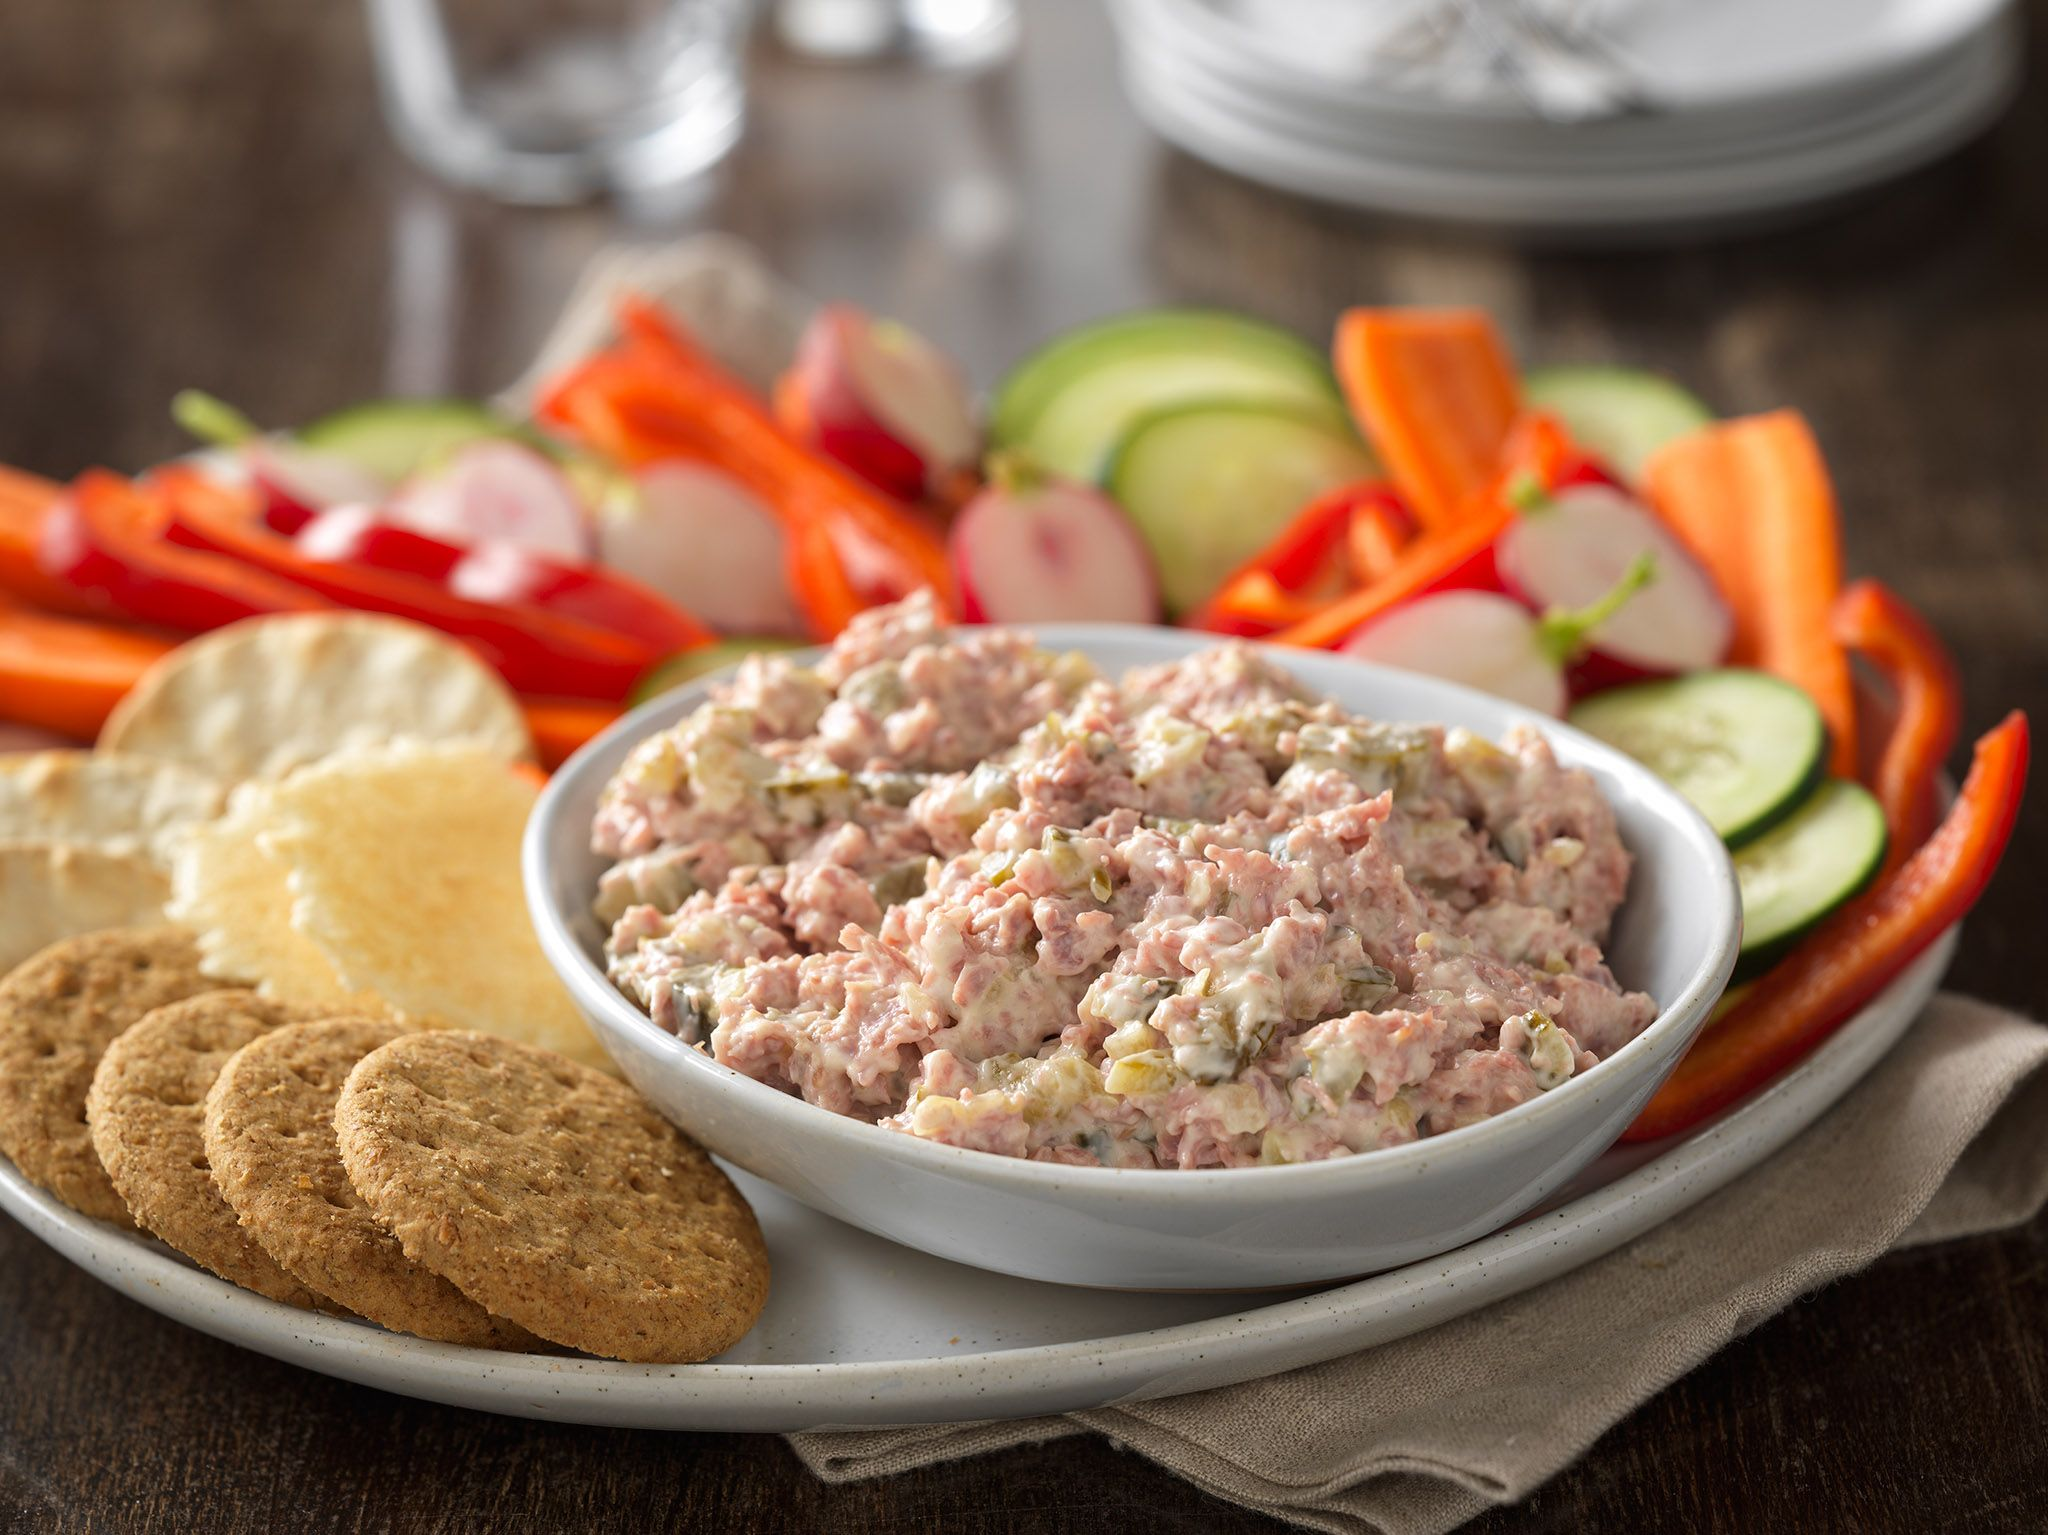 How to make corned beef sandwich spread